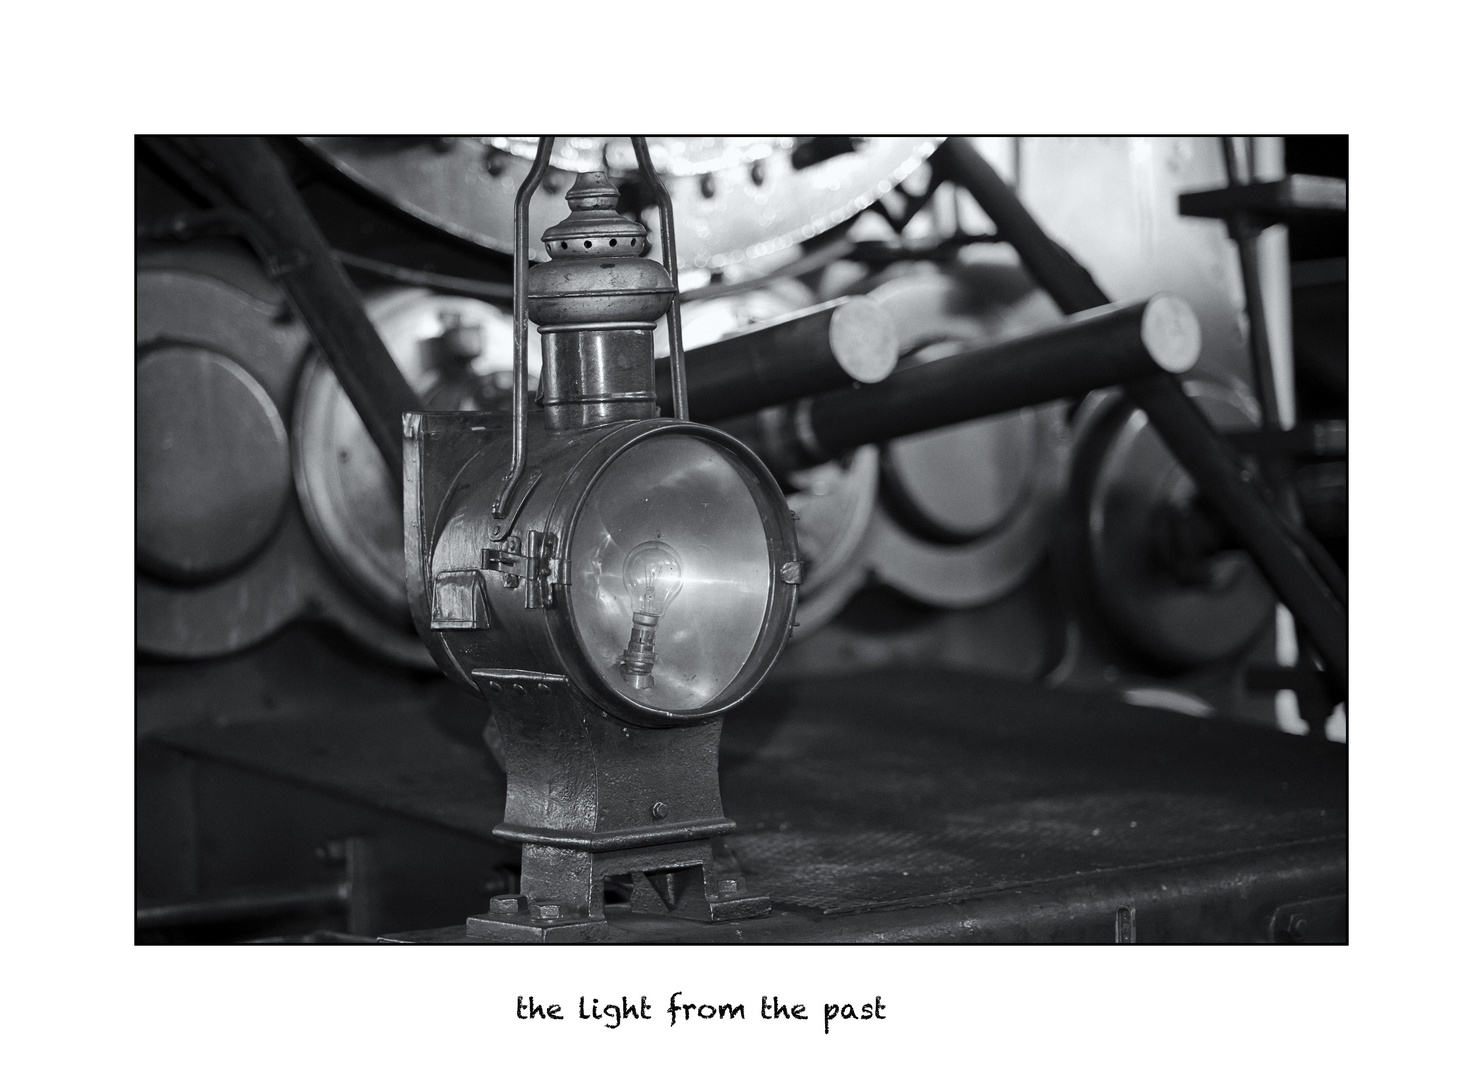 the light from the past